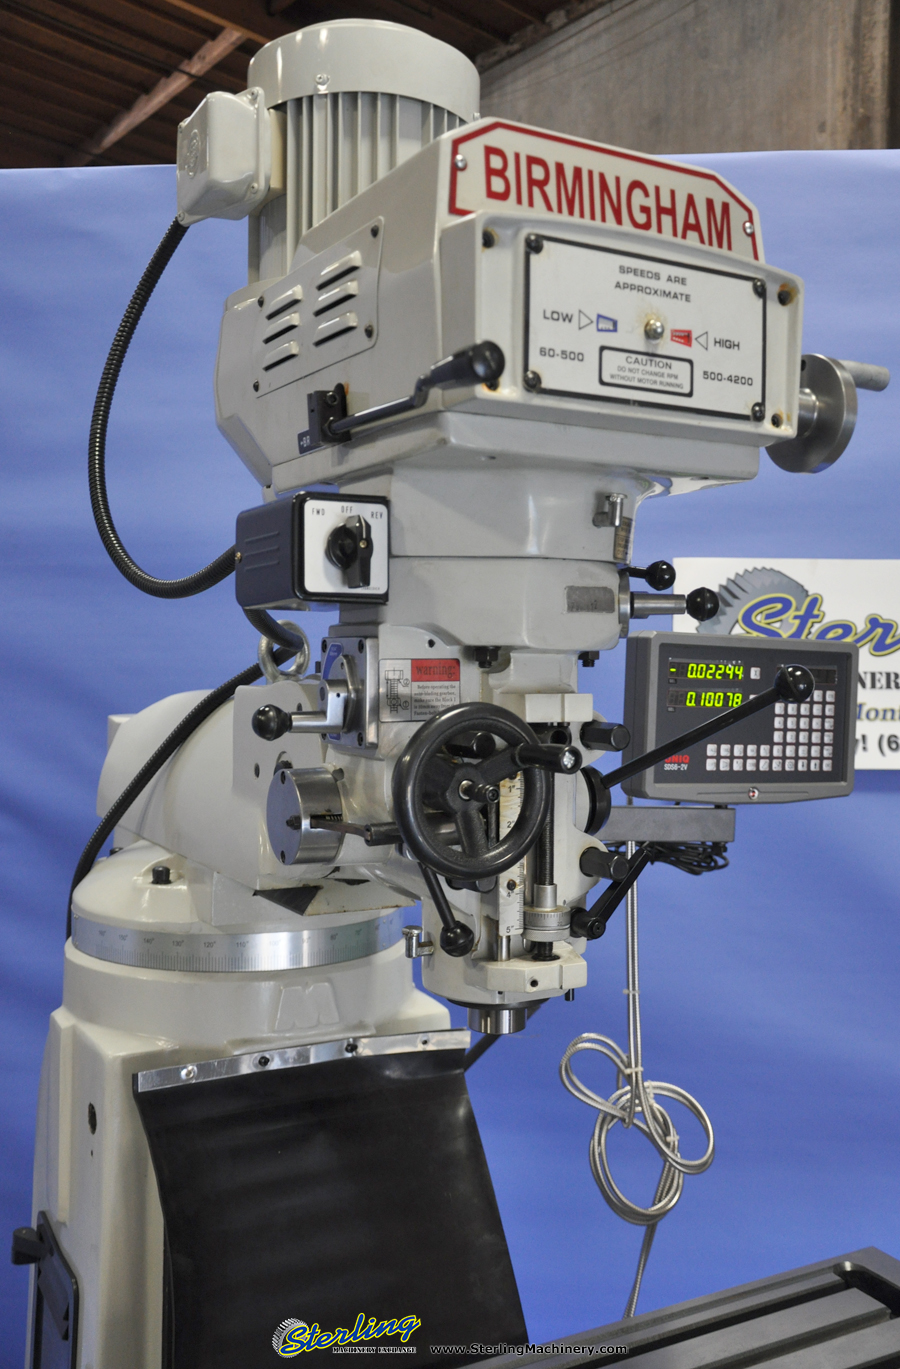 Brand New Birmingham Variable Speed Vertical Milling